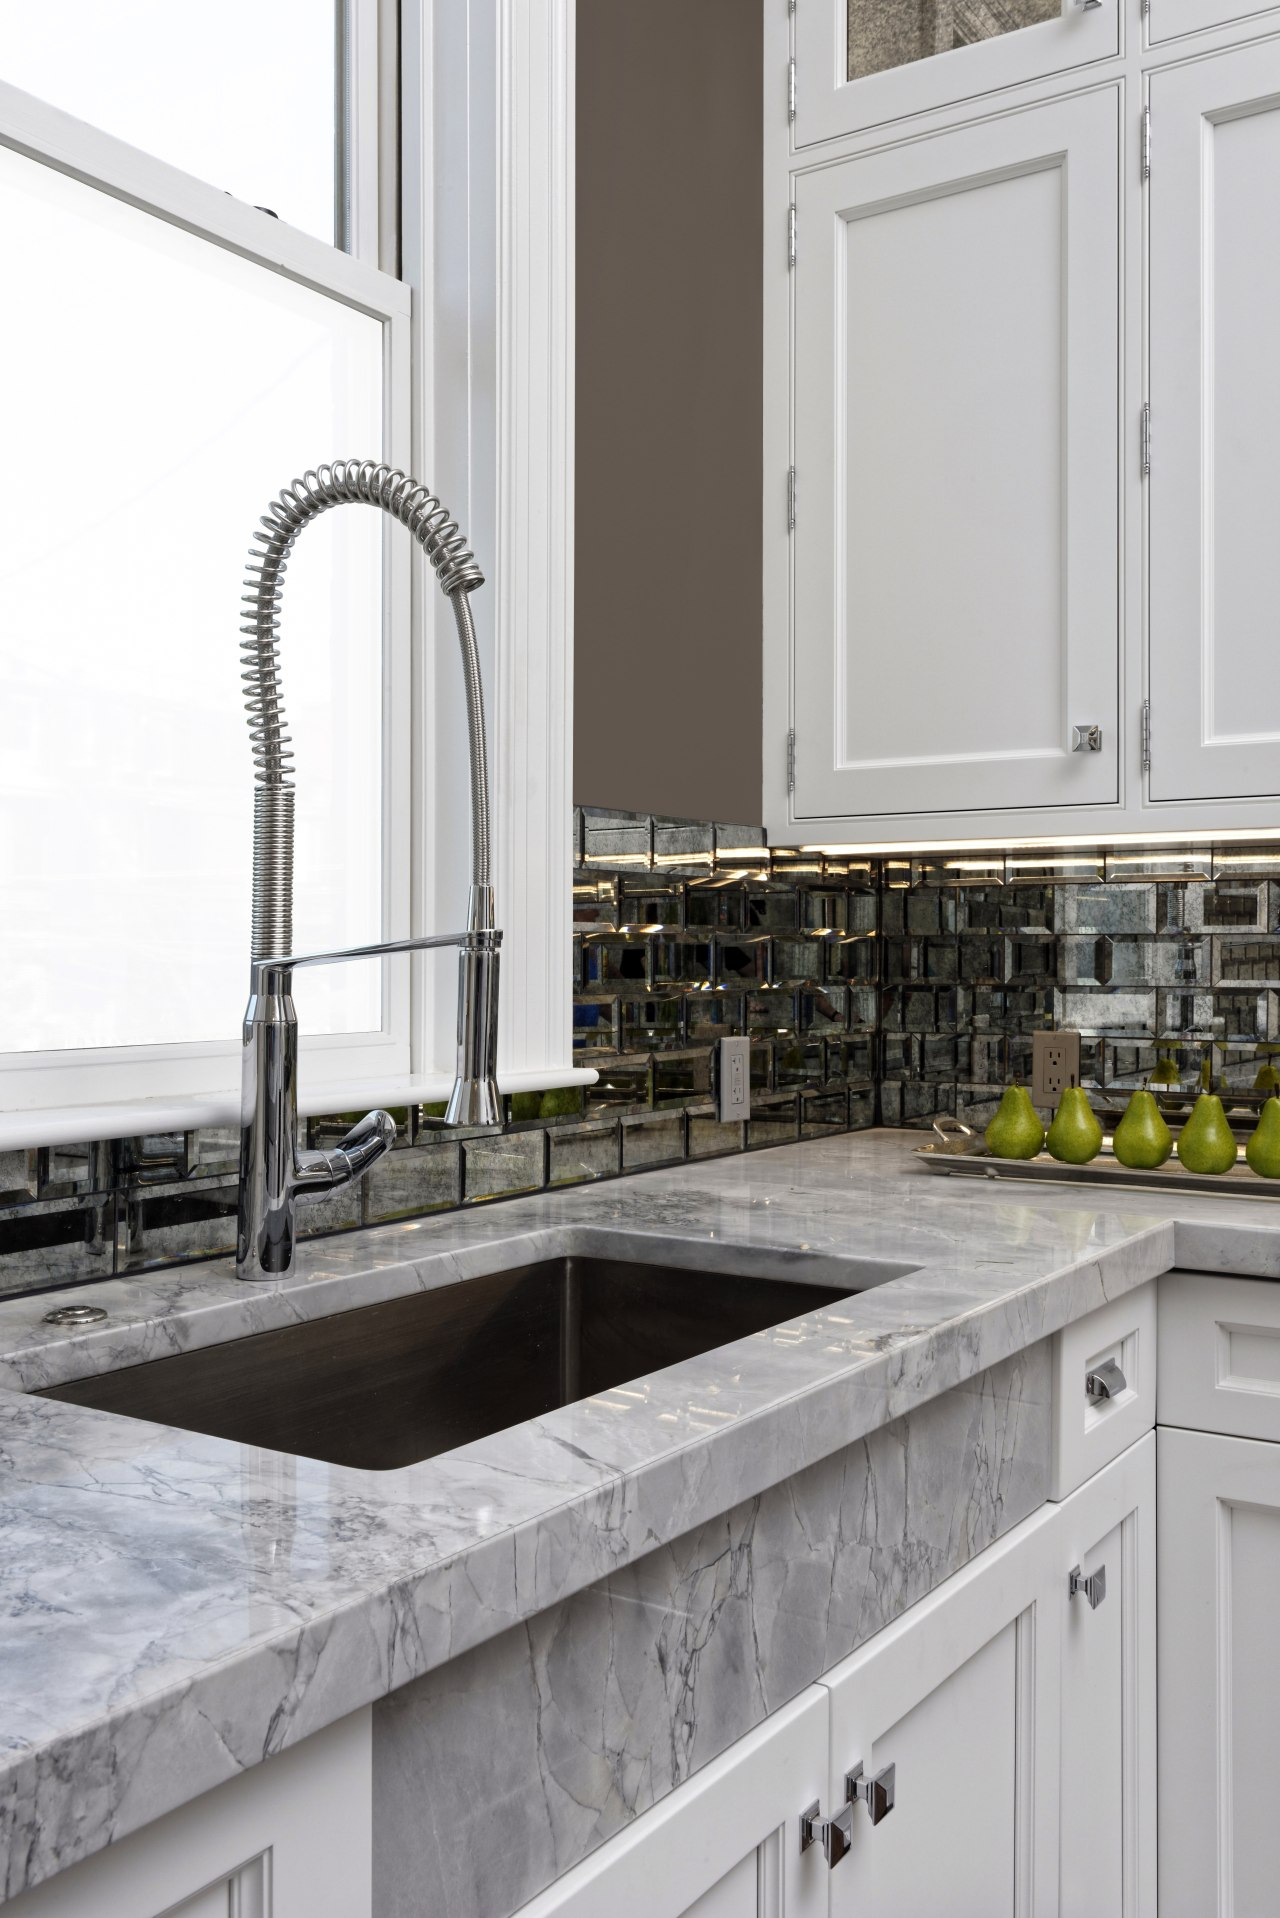 Everything is on the tall side in this countertop, kitchen, sink, tap, white, gray